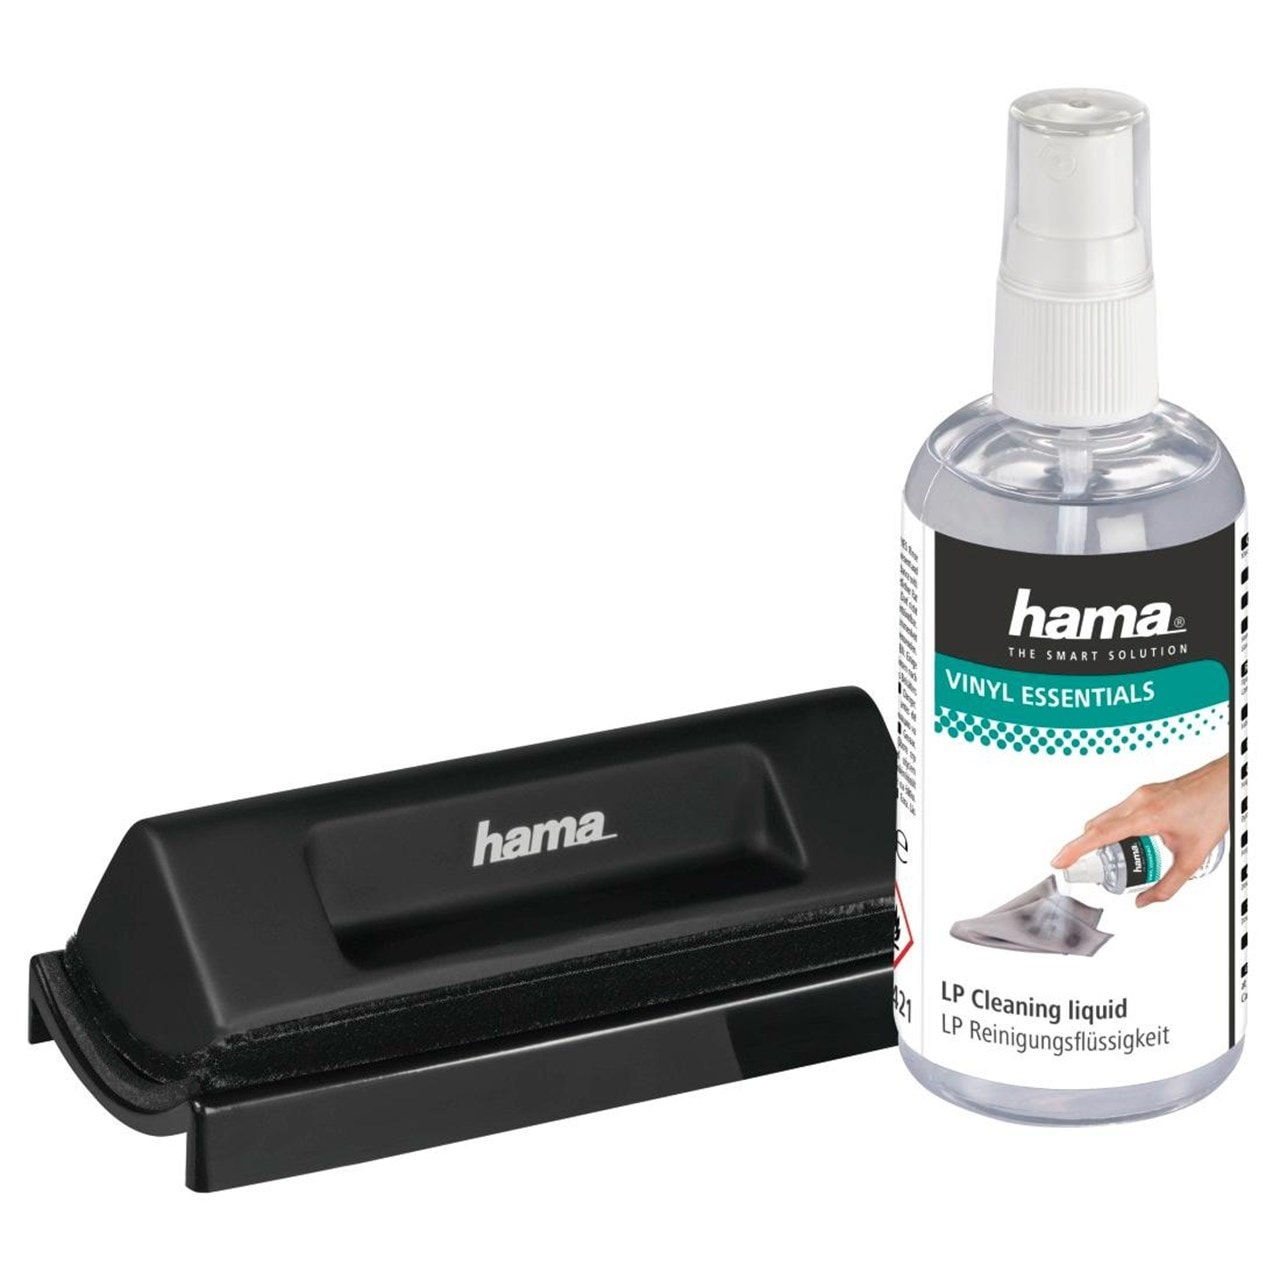 Hama Record Cleaning Kit - 1